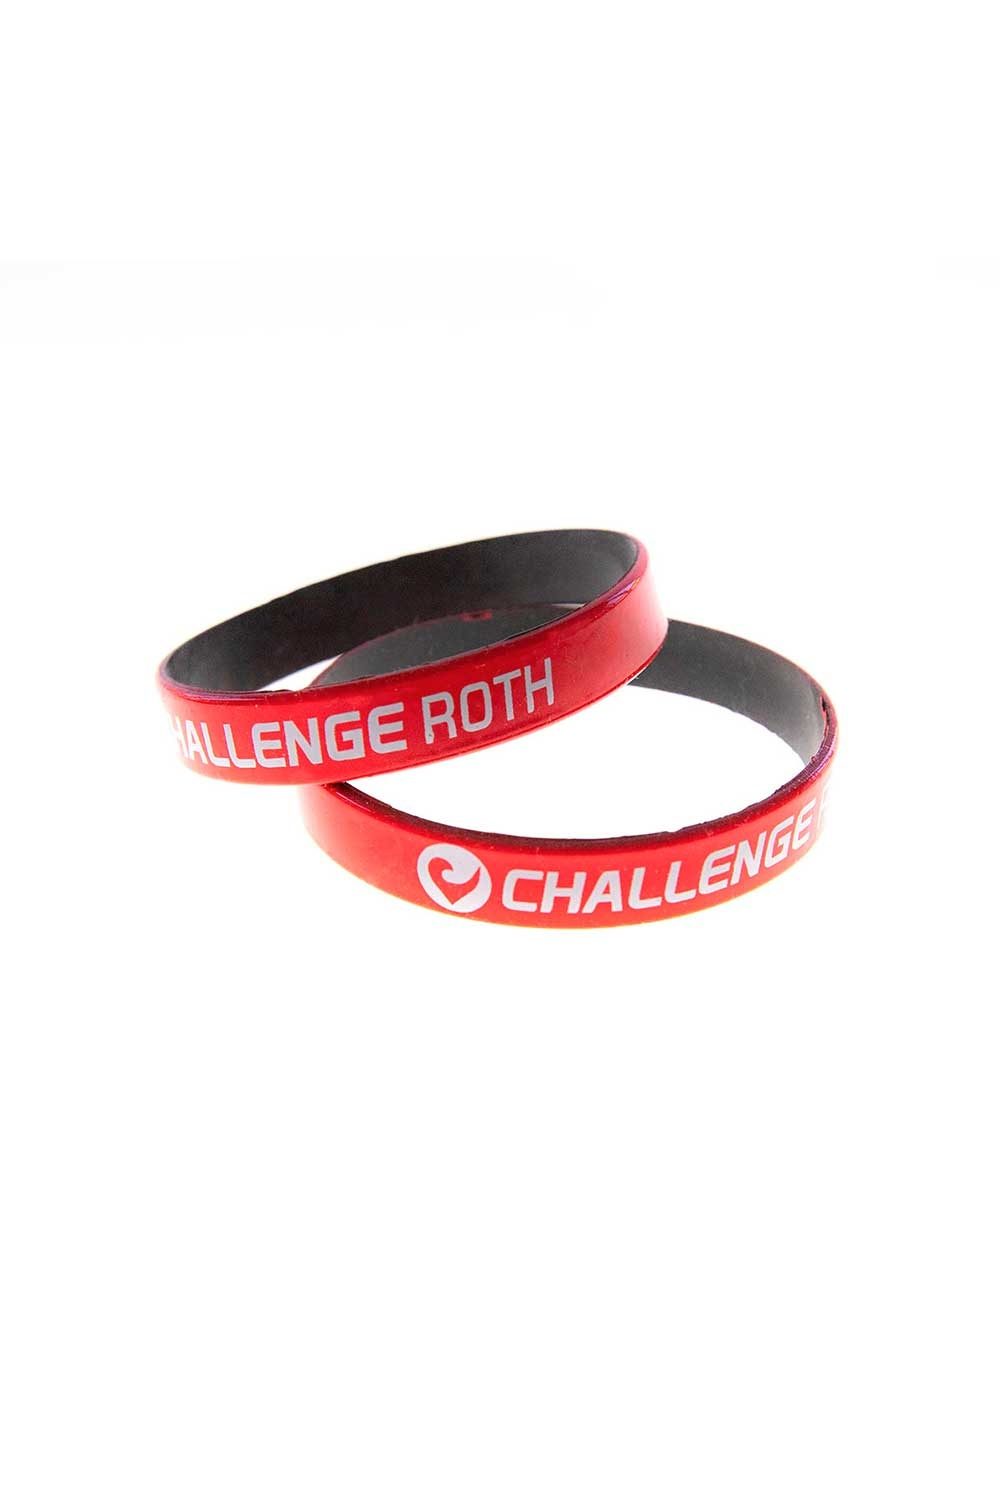 Armband Challenge Roth rot-schwarz-1